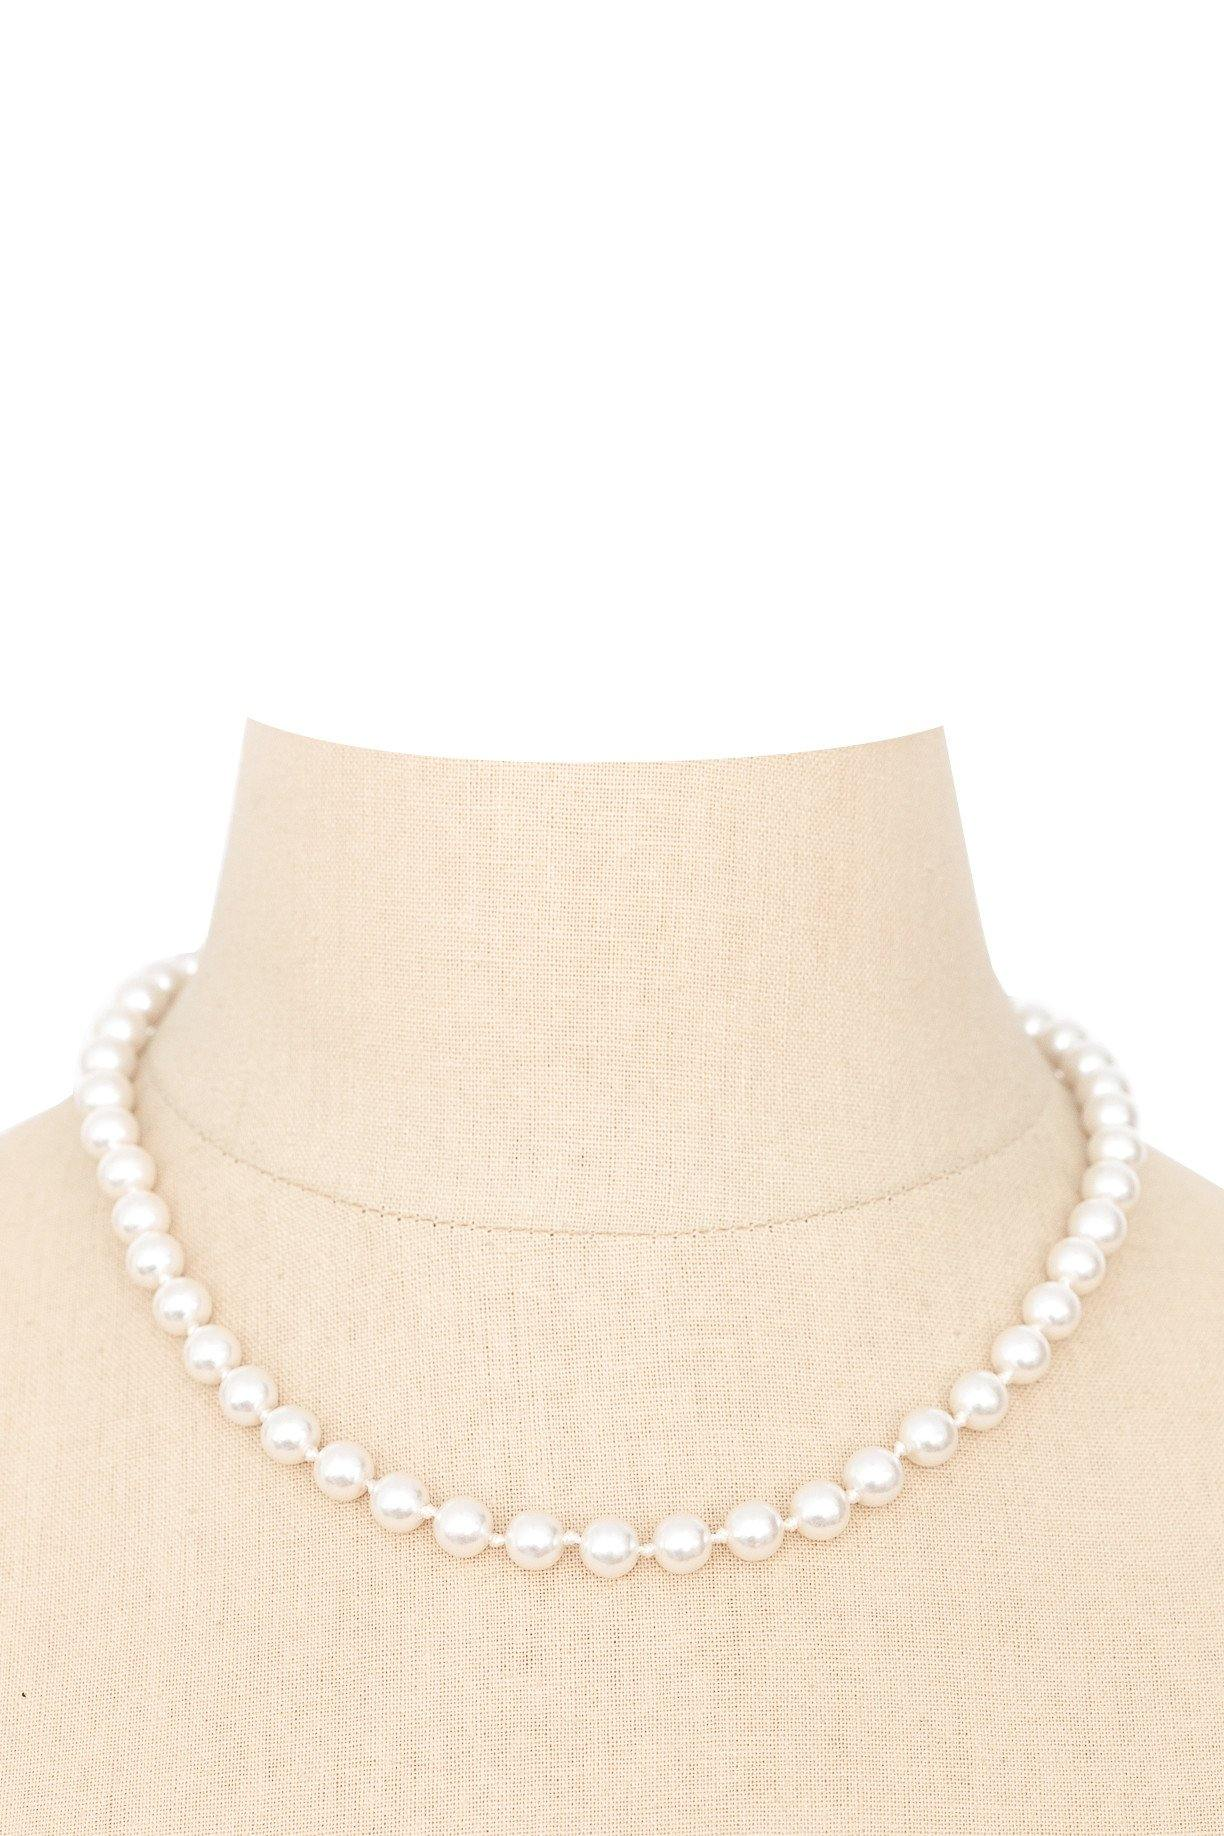 80's__Vintage__Classic Pearl Necklace